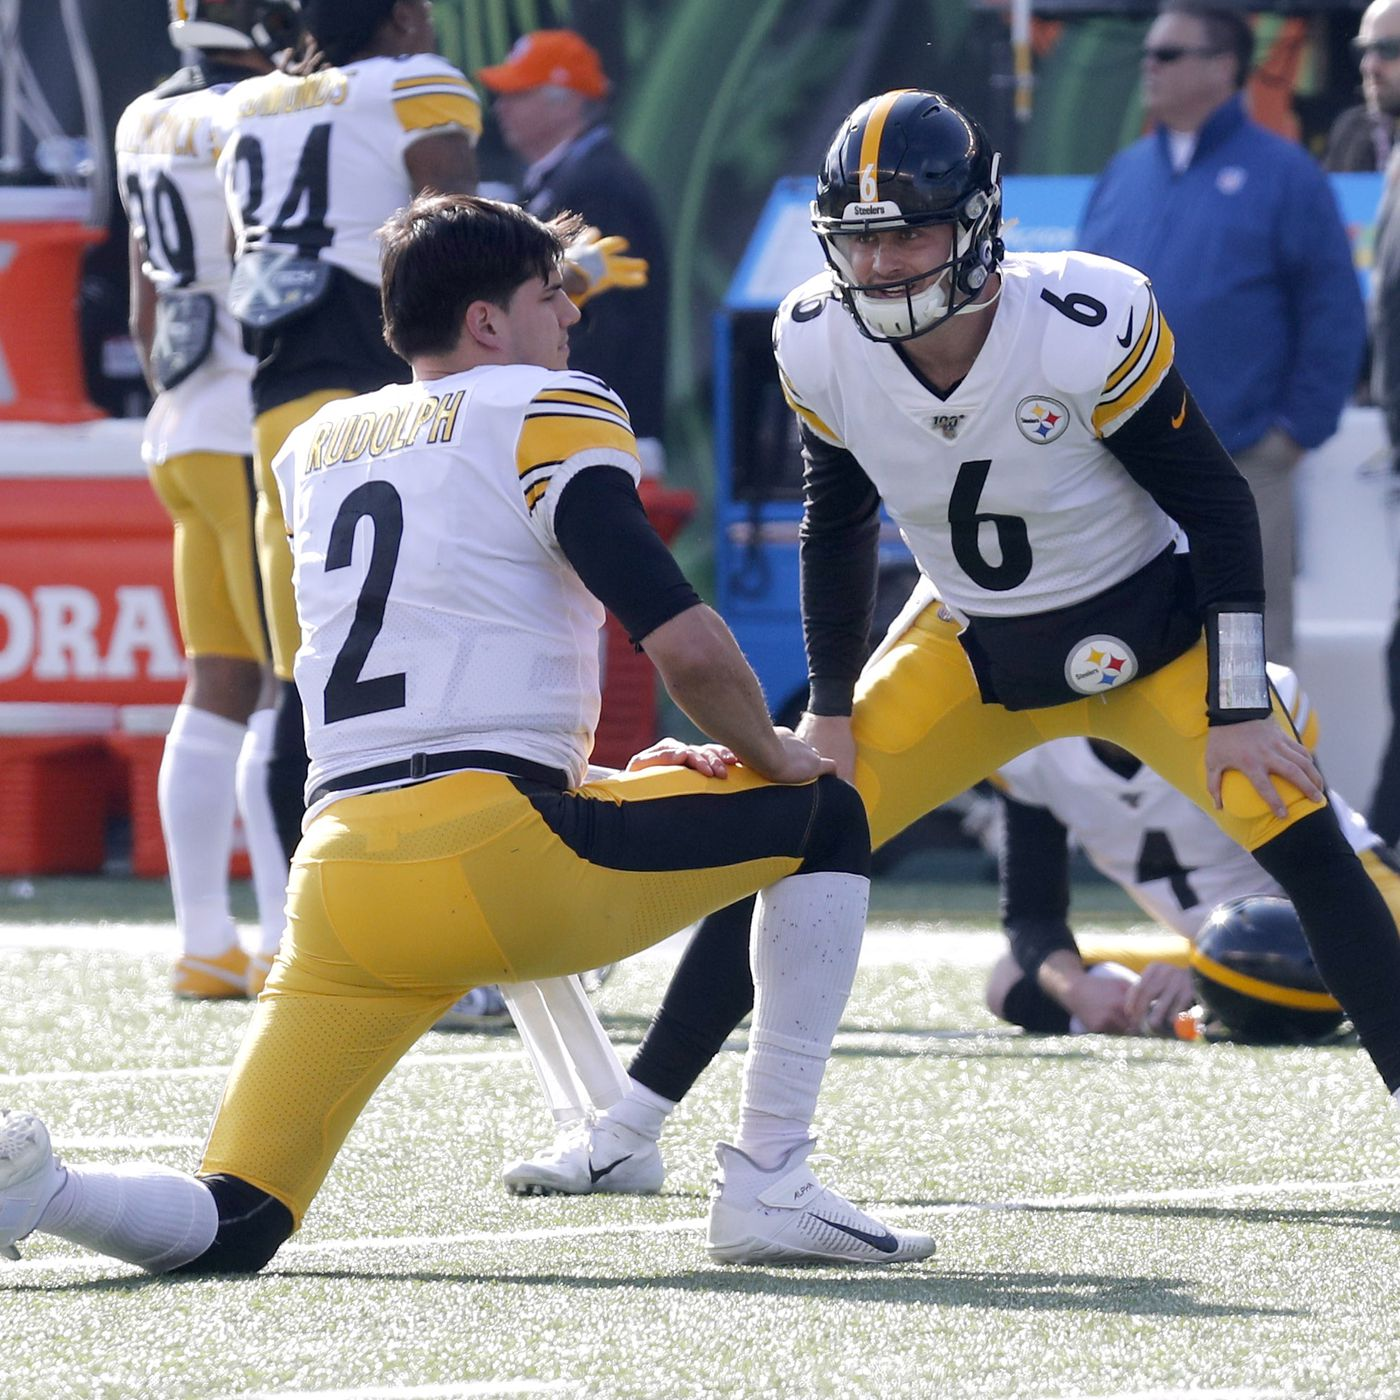 Steelers Vs Bengals Week 12 1st Quarter Live In Game